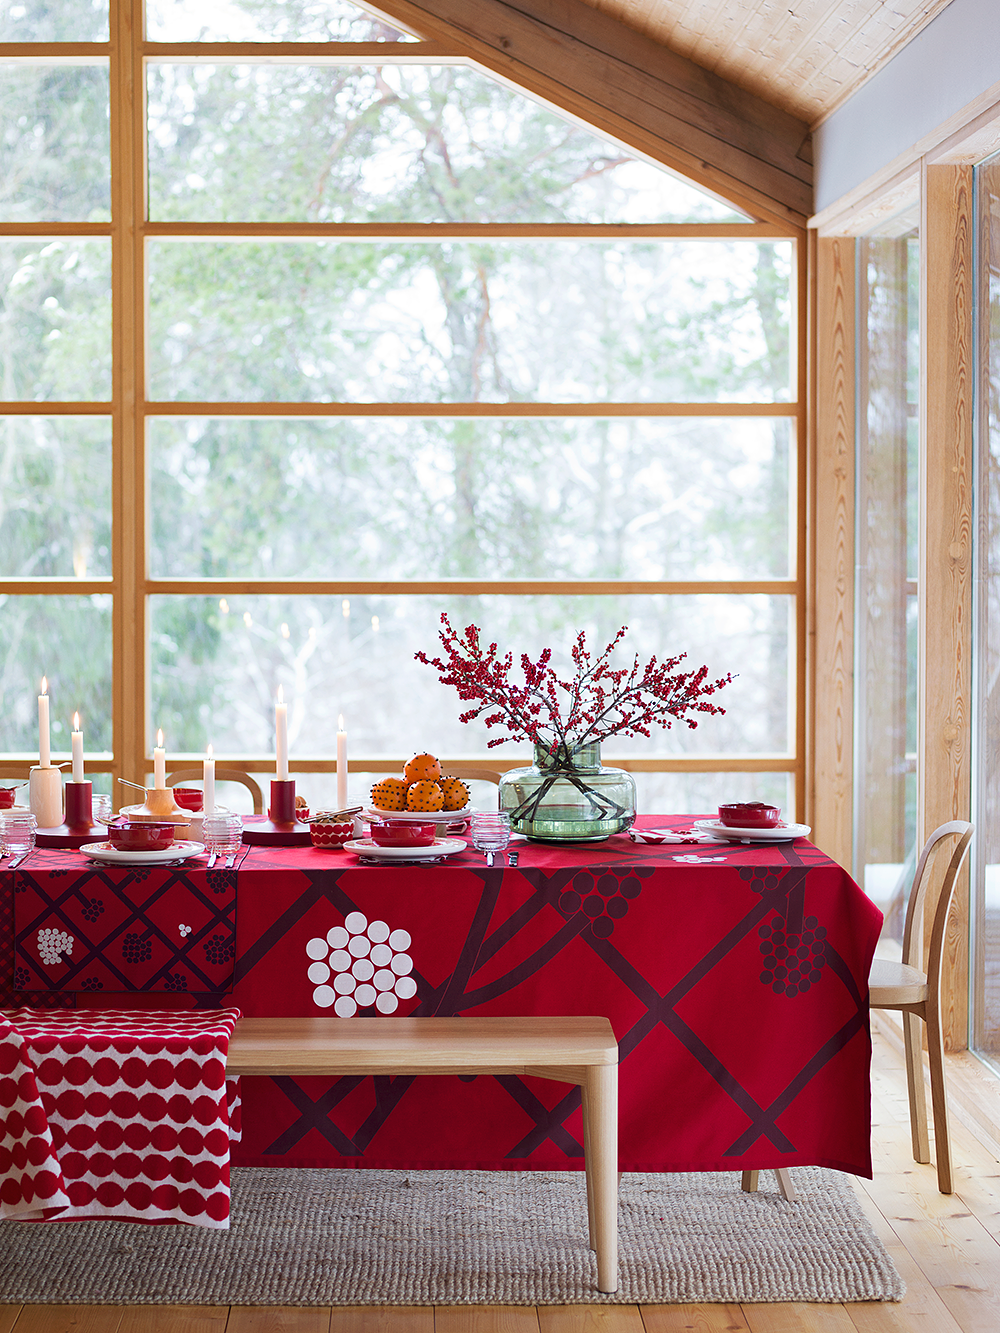 Marimekko table setting